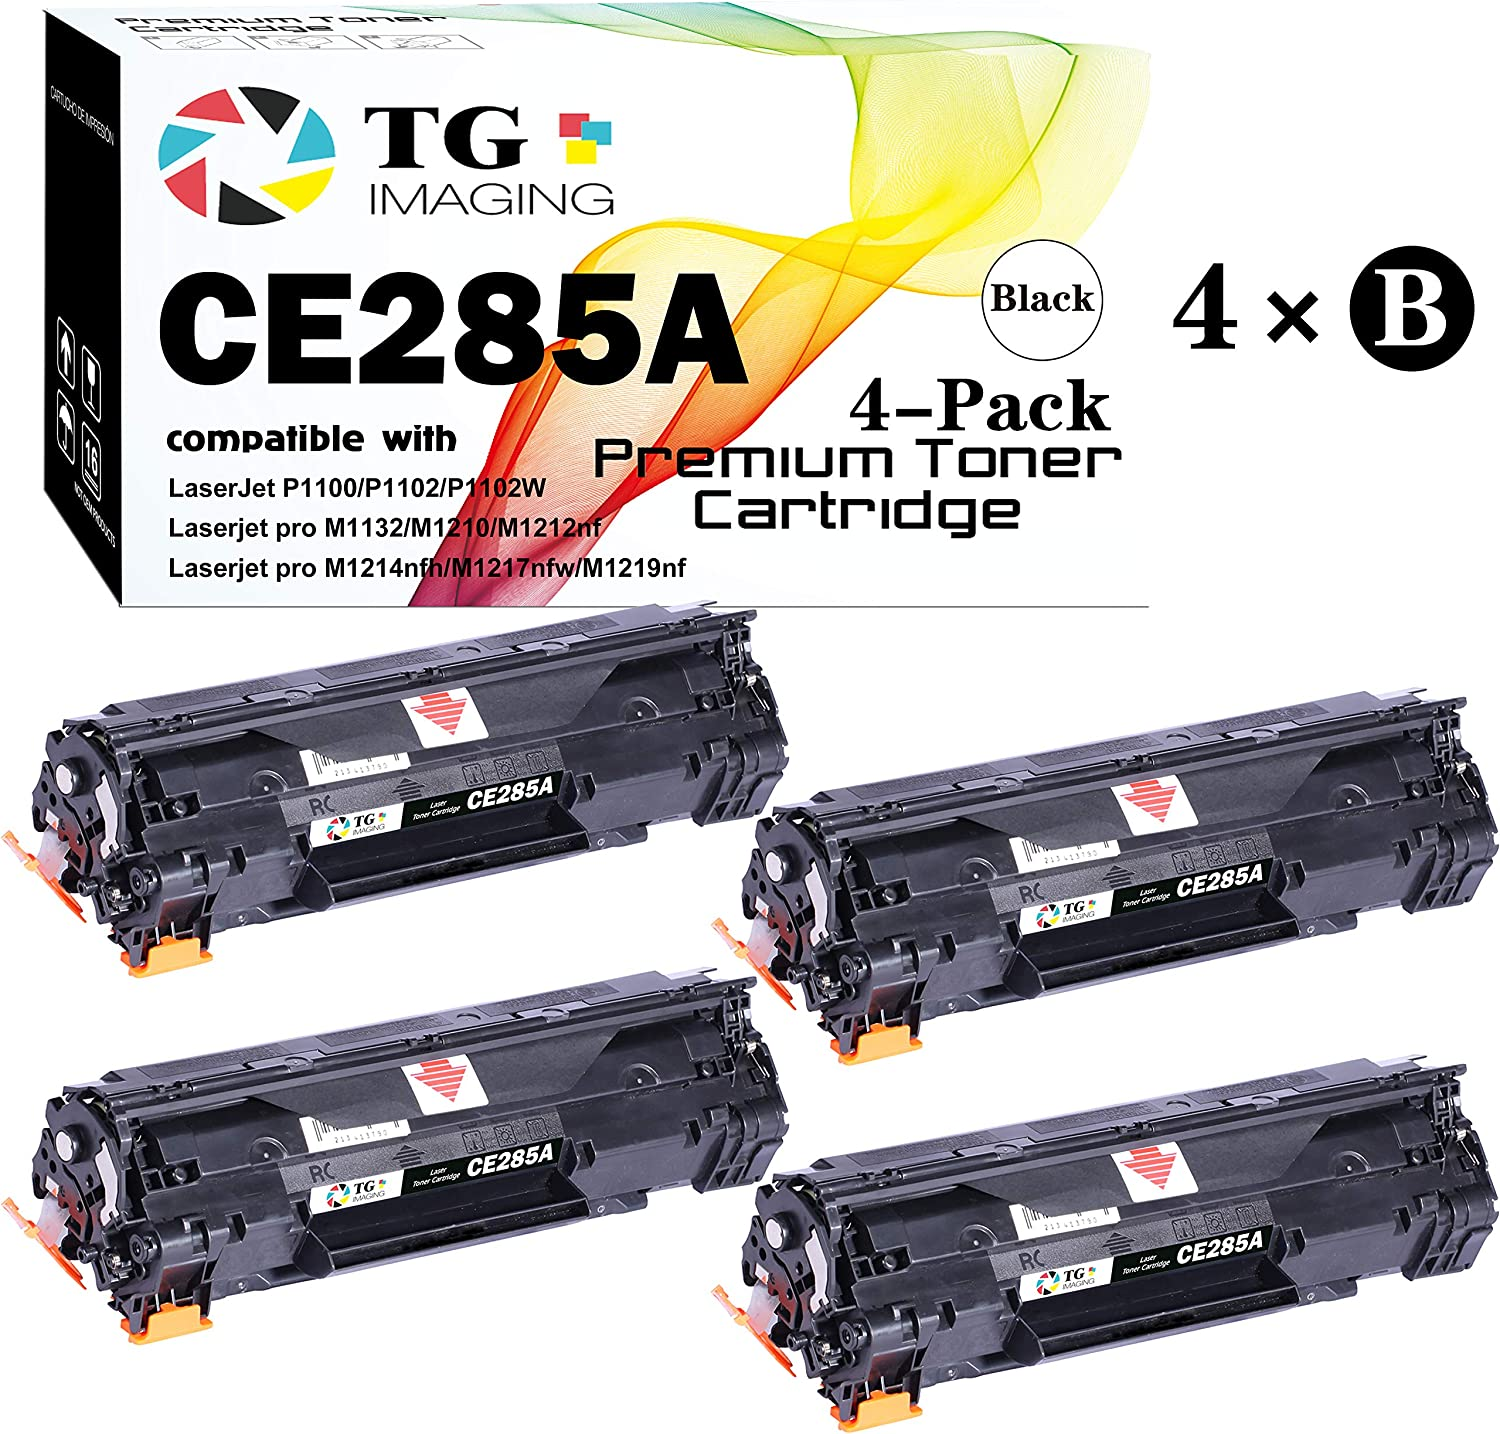 (4 Black) TG Imaging Compatible HP 85A 285A CE285A Toner Cartridge for use in HP Laserjet Pro M1132 M1210 M1212NF M1217NFW P1102 P1102W Printer